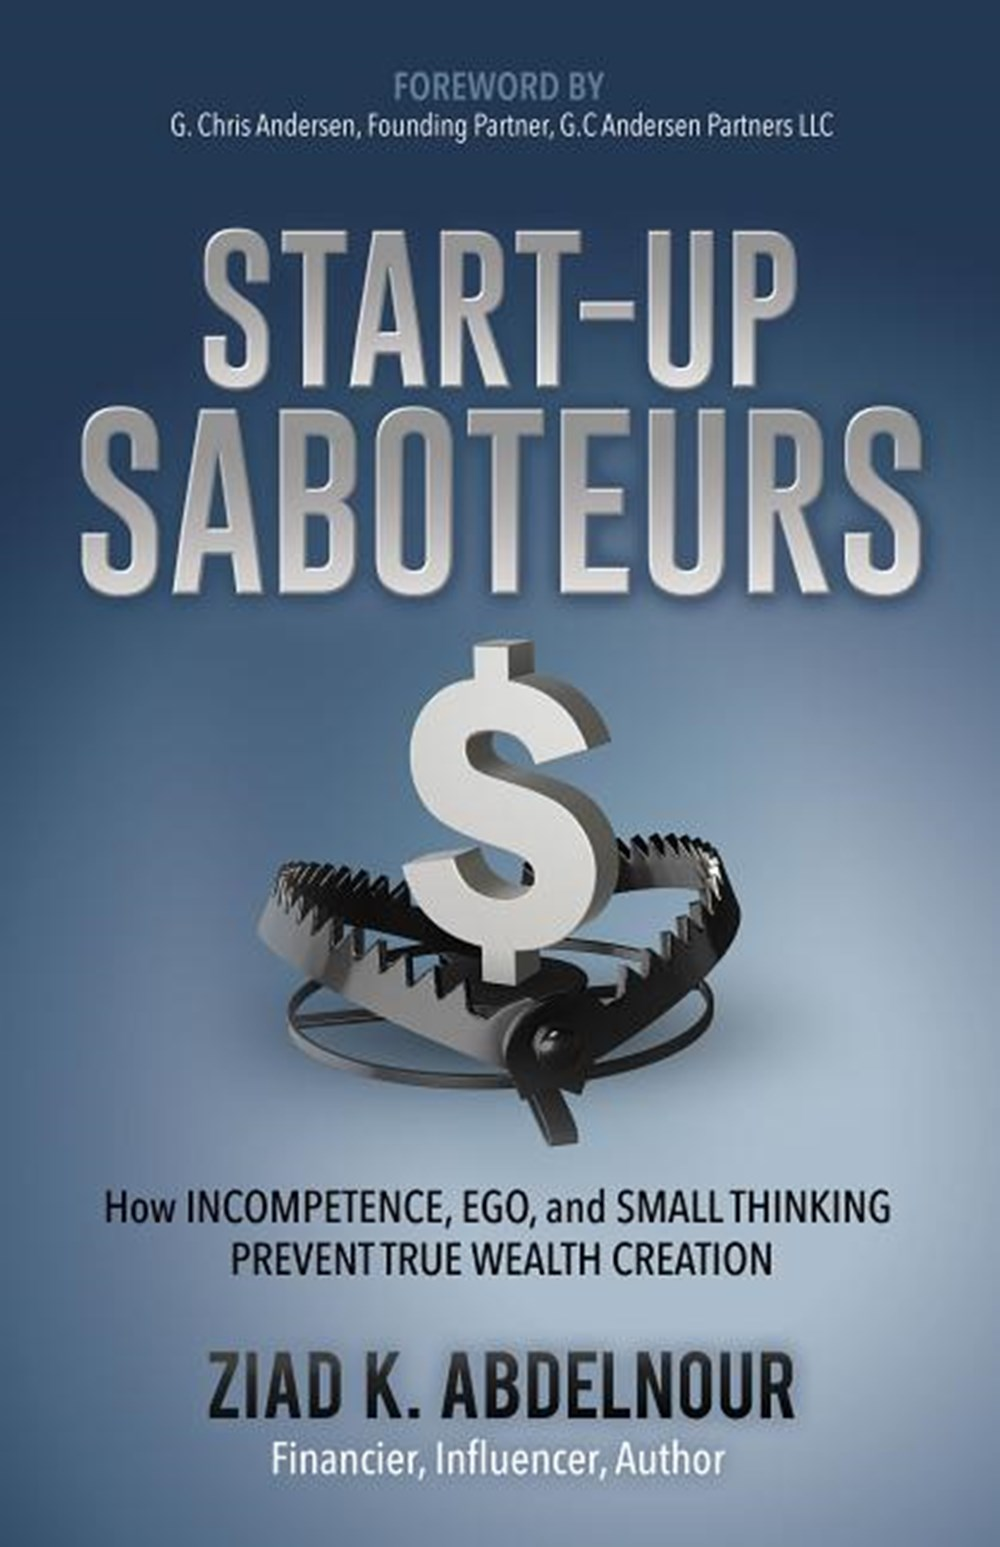 Start-Up Saboteurs How Incompetence, Ego, and Small Thinking Prevent True Wealth Creation